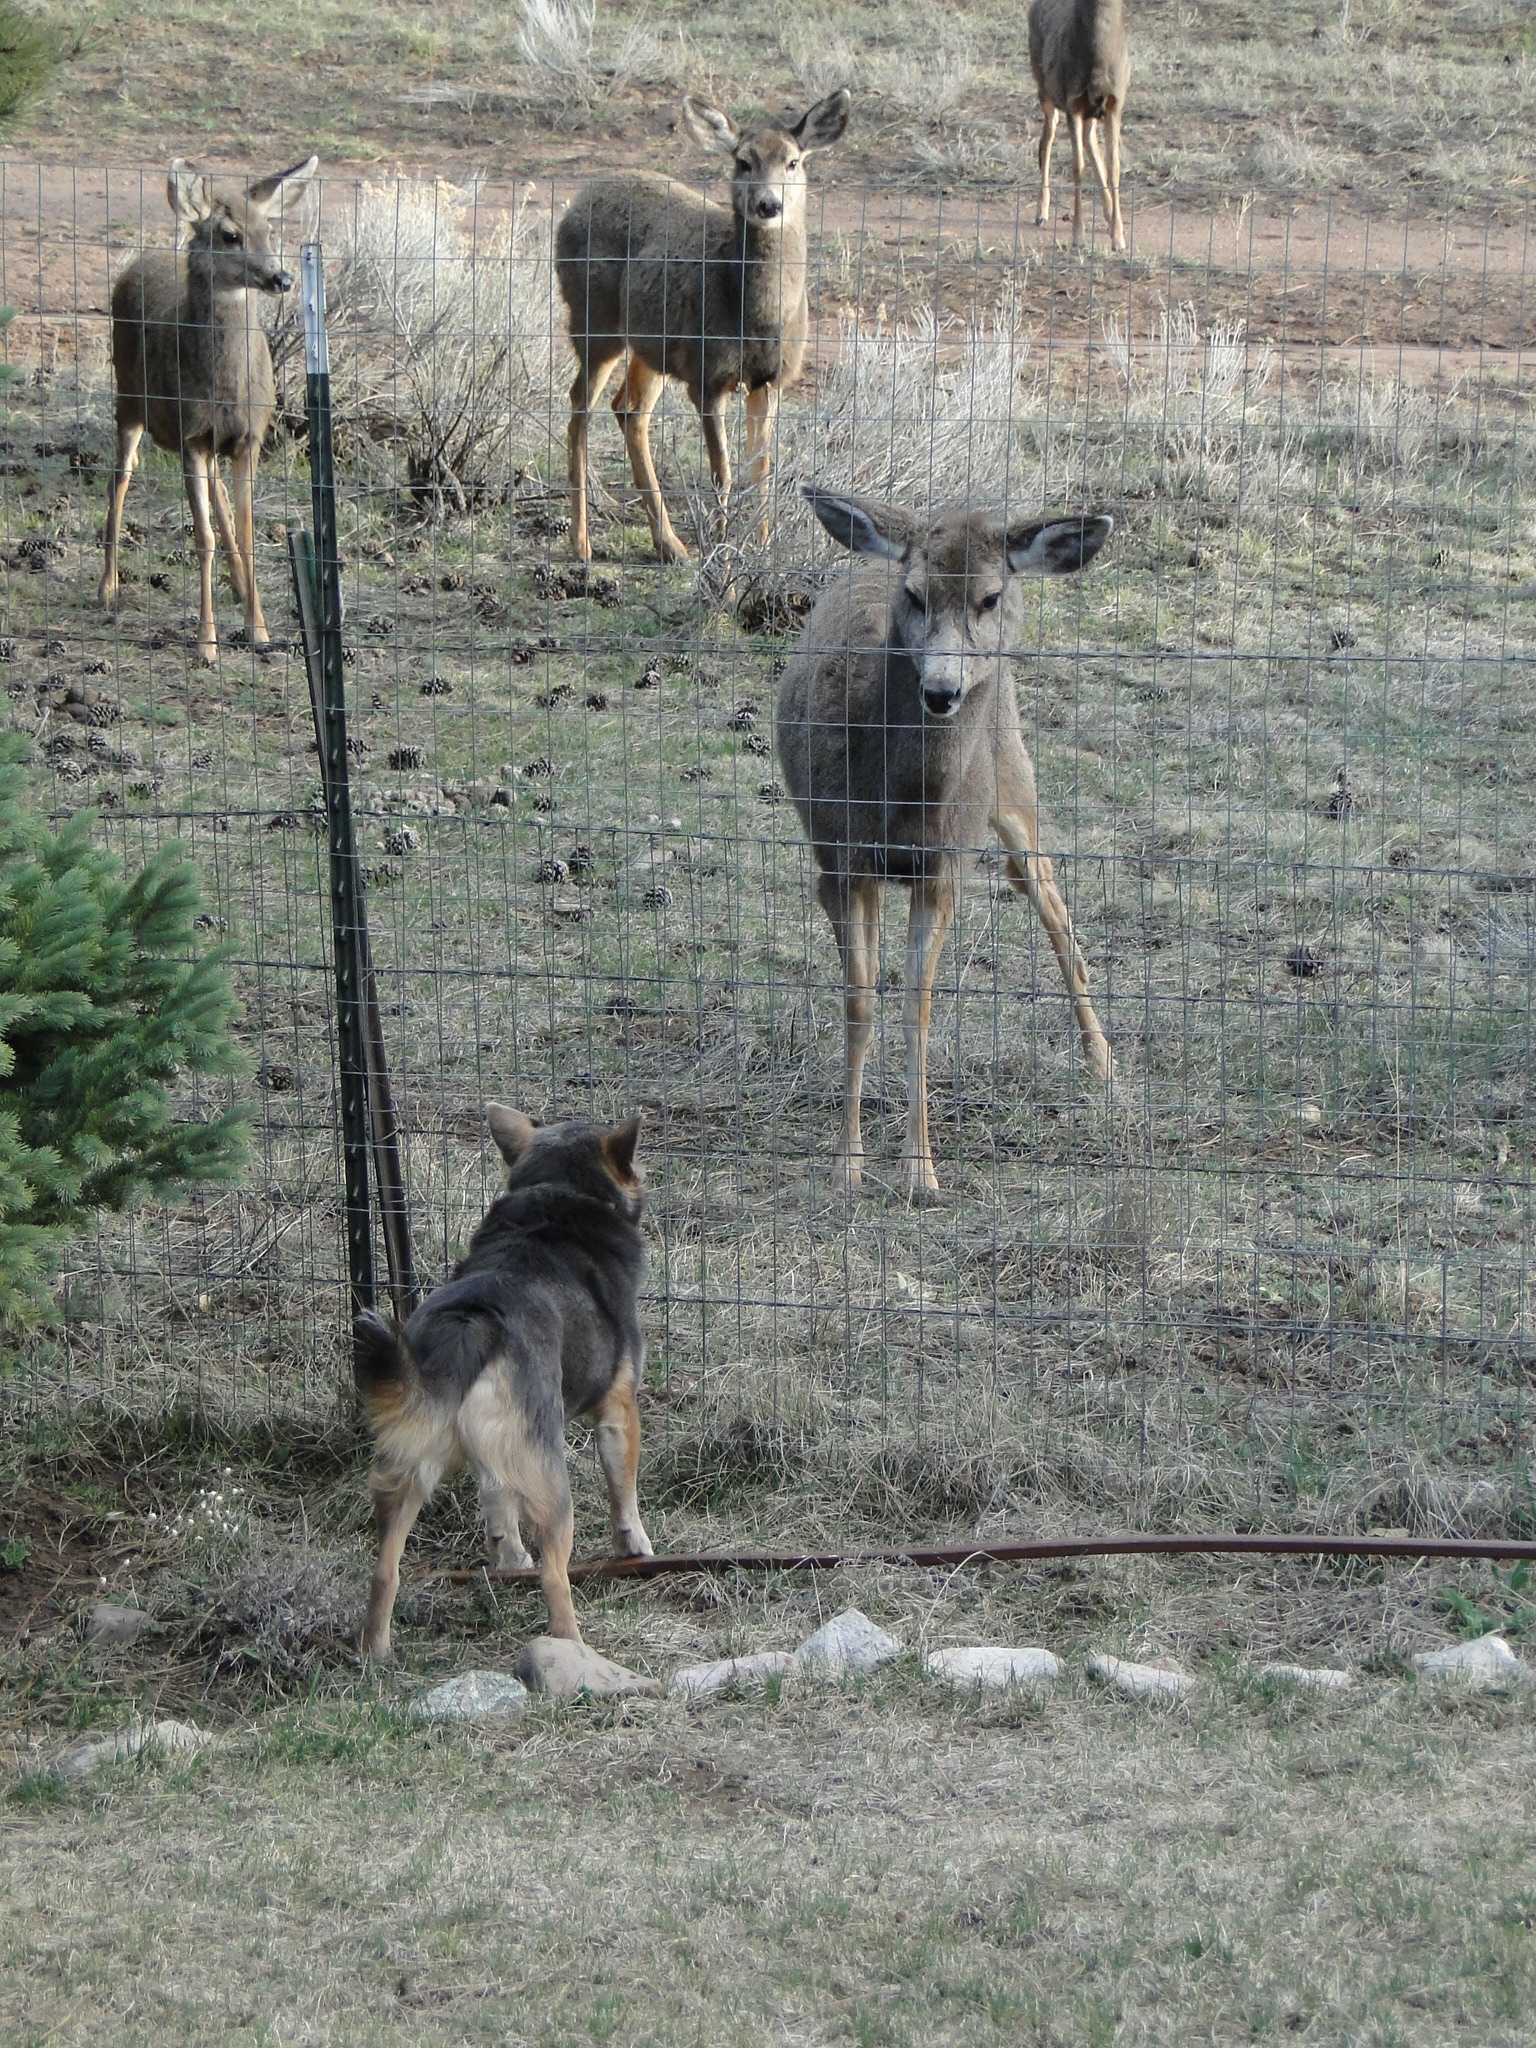 Mule deer outside back yard